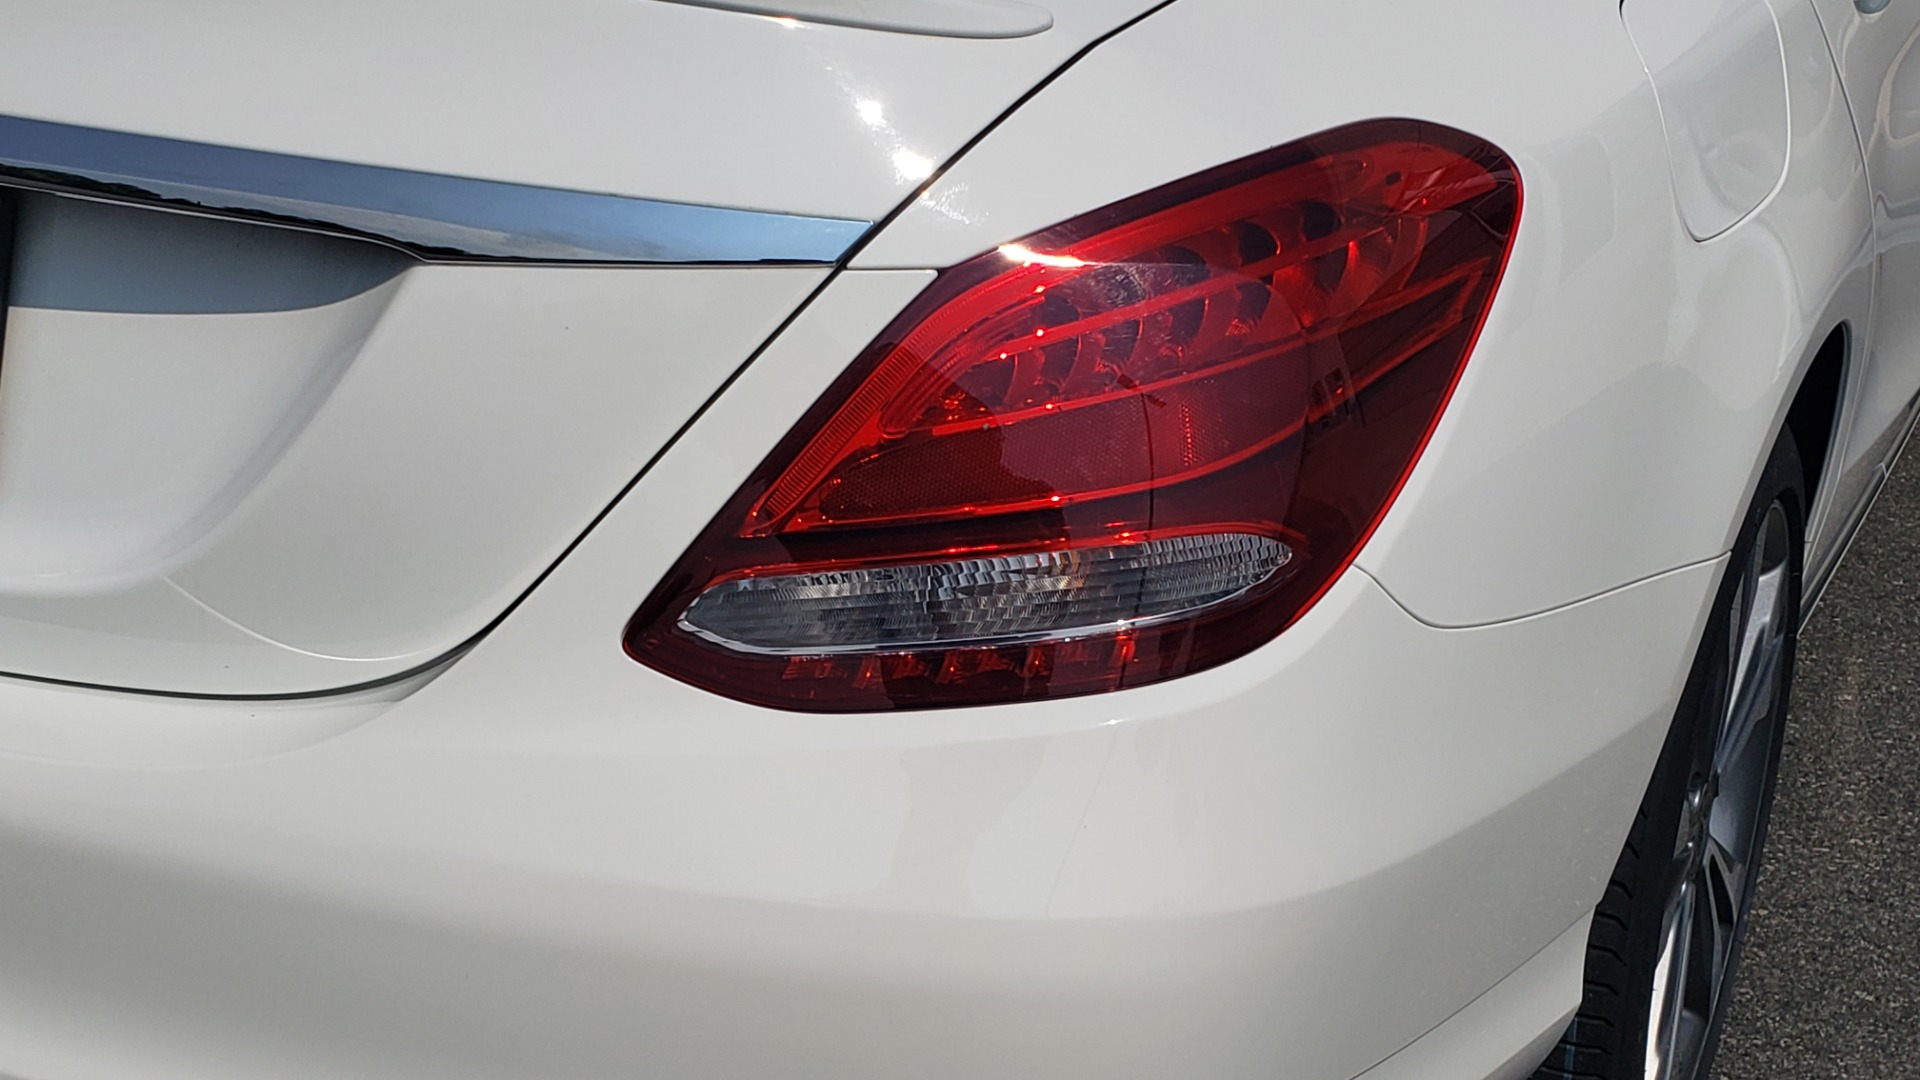 Used 2018 Mercedes-Benz C-CLASS C 300 PREMIUM / KEYLESS-GO / APPLE / PANO-ROOF / REARVIEW for sale $28,295 at Formula Imports in Charlotte NC 28227 28